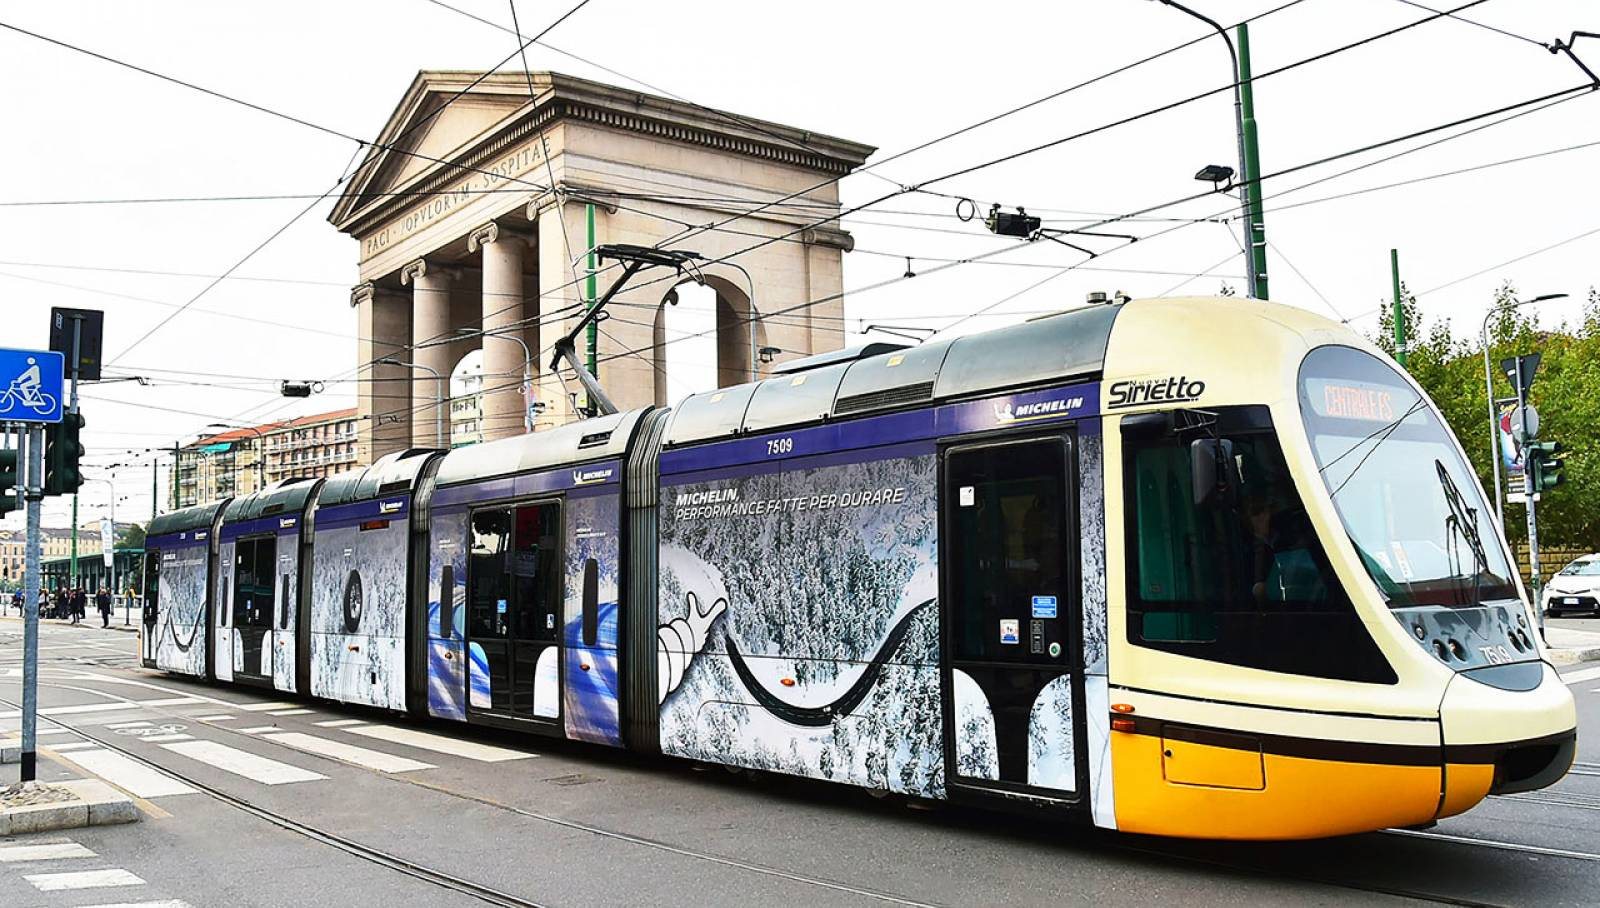 Out of Home advertising in Milan Full-Wrap IGPDecaux for Michelin